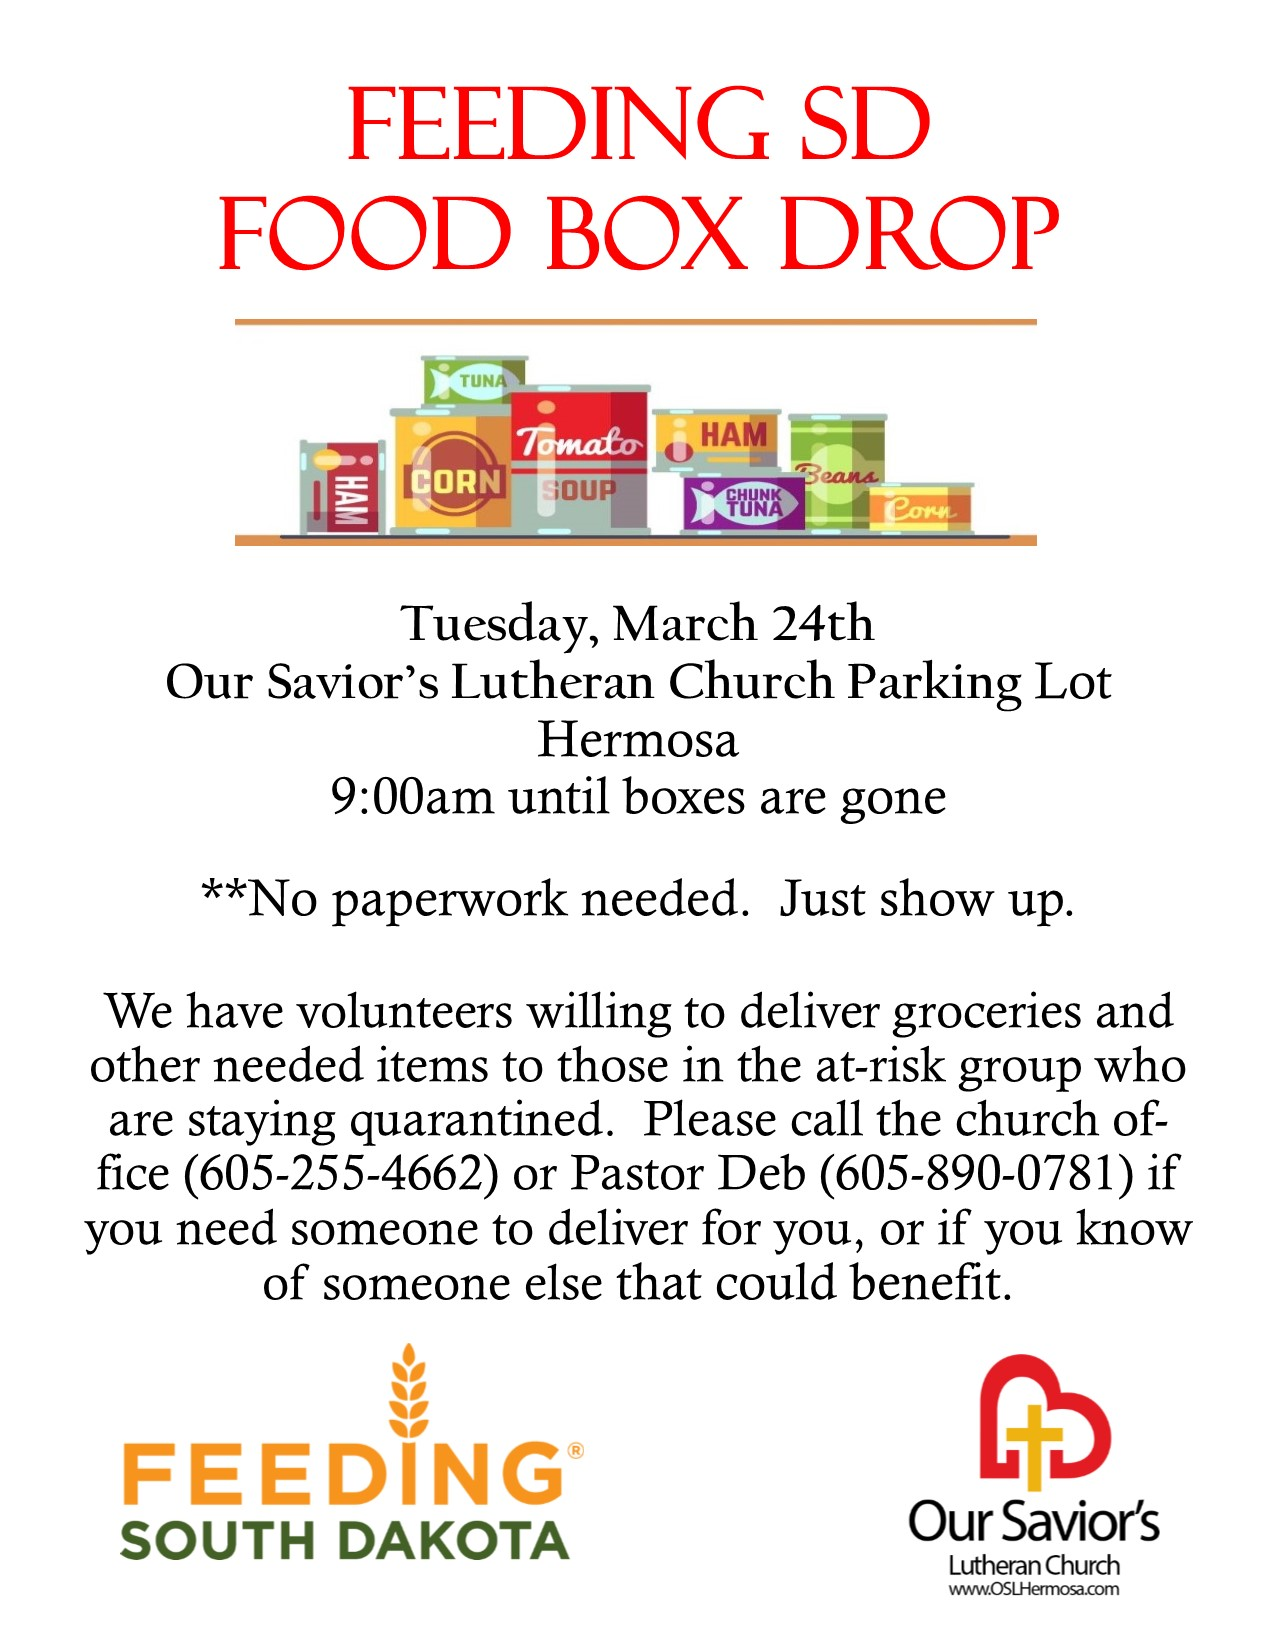 Feeding South Dakota Food Box Drop